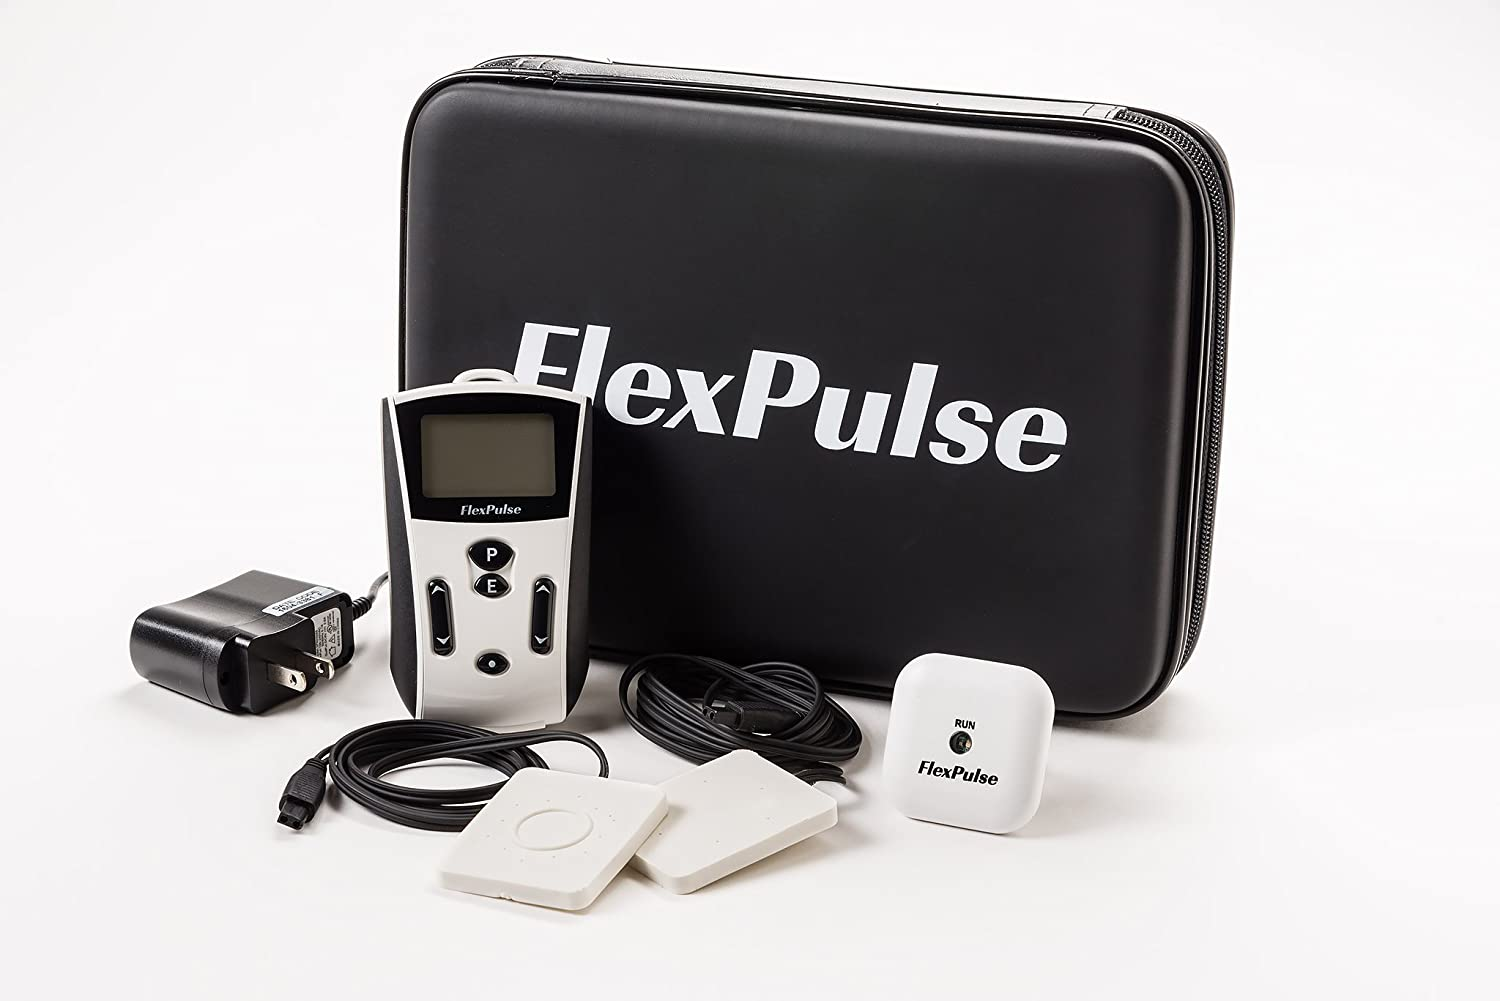 FlexPulse Portable PEMF Device